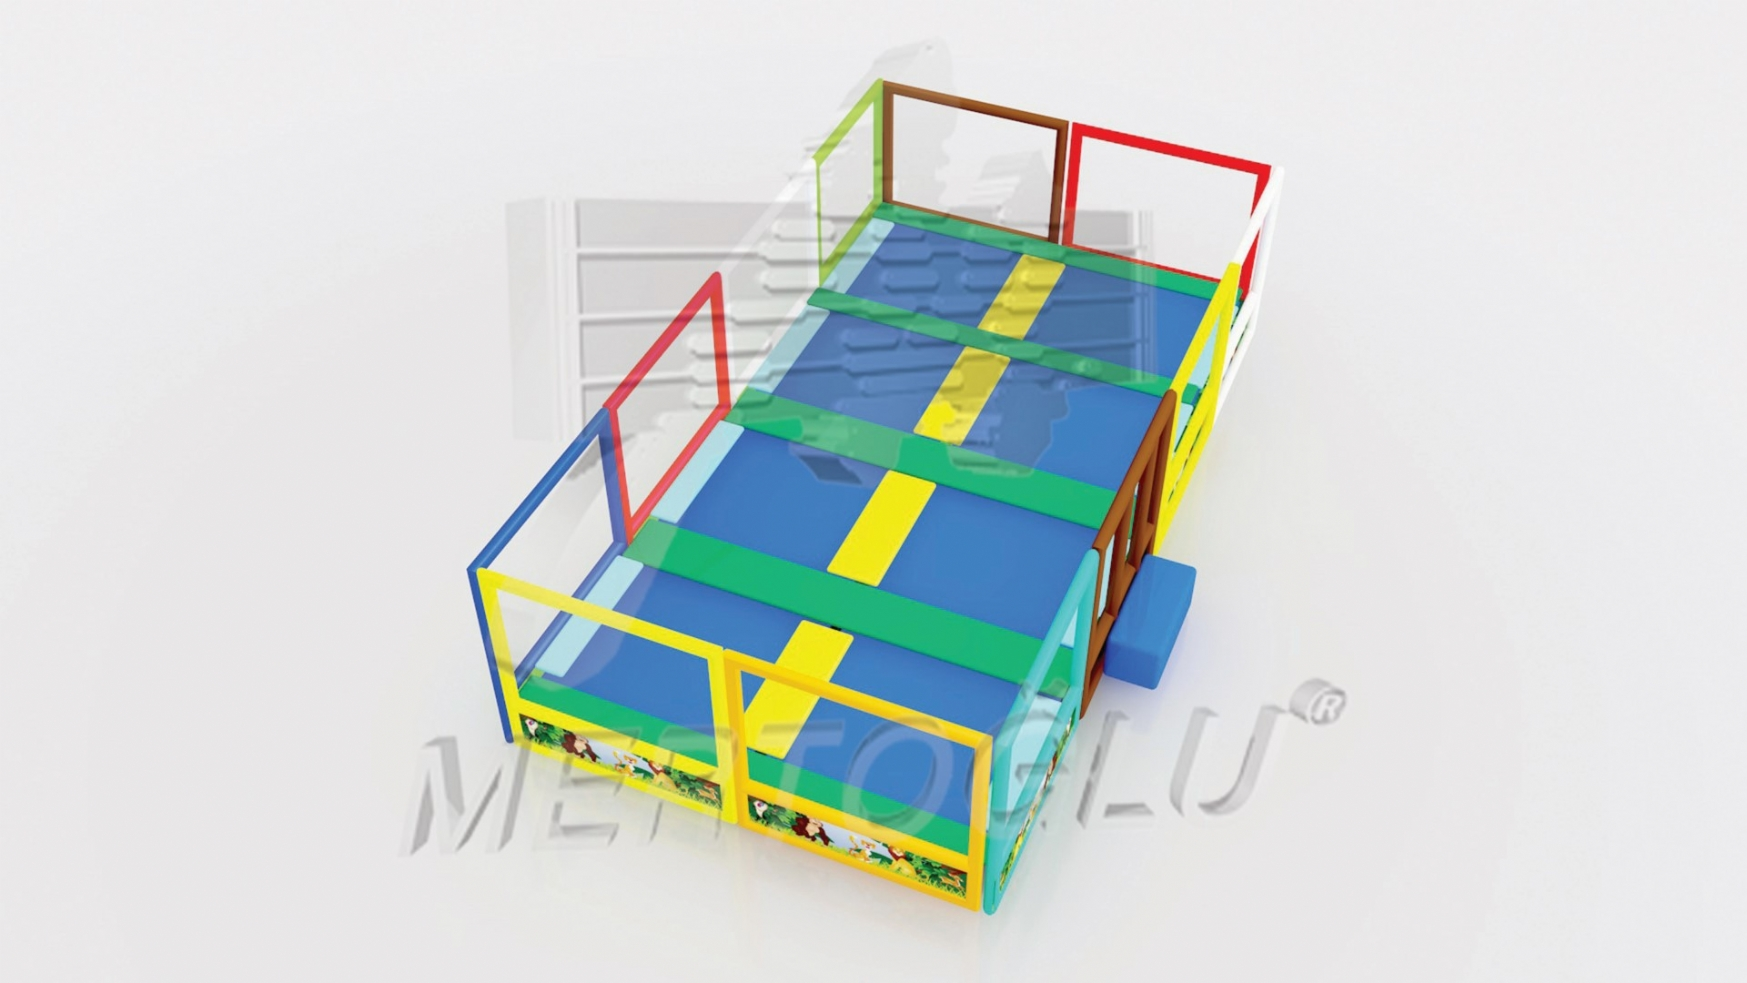 Softplay Trambolin Msp-021